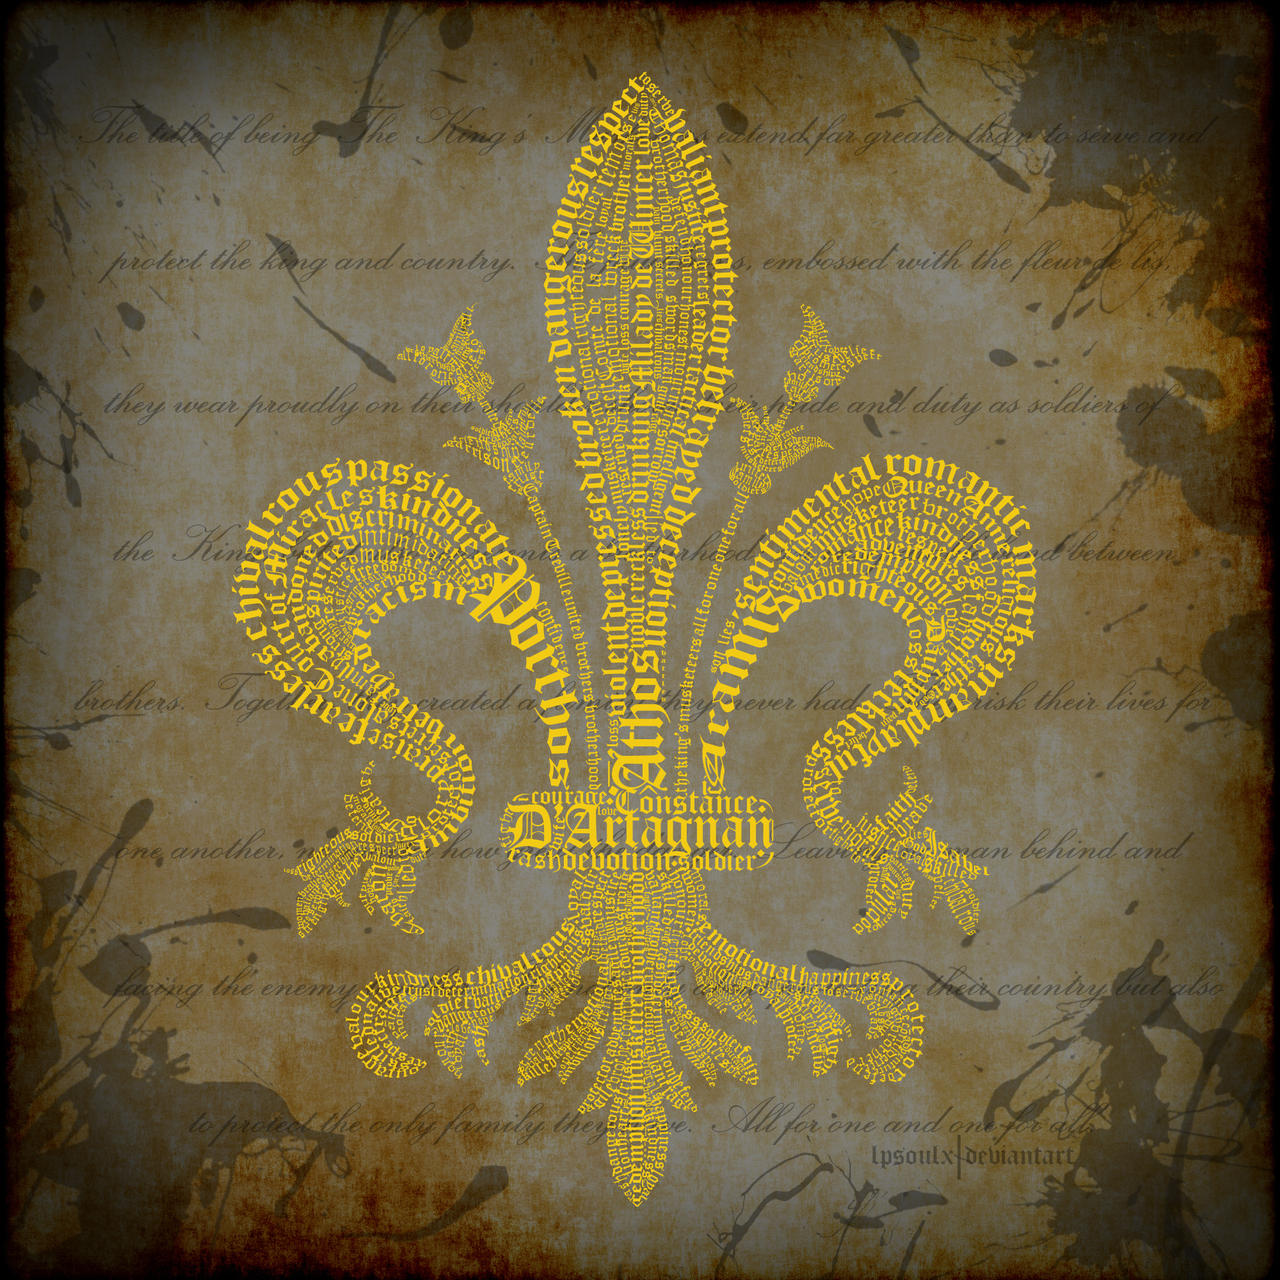 Fleur De Lis Typography The Musketeers By Lpsoulx On Deviantart